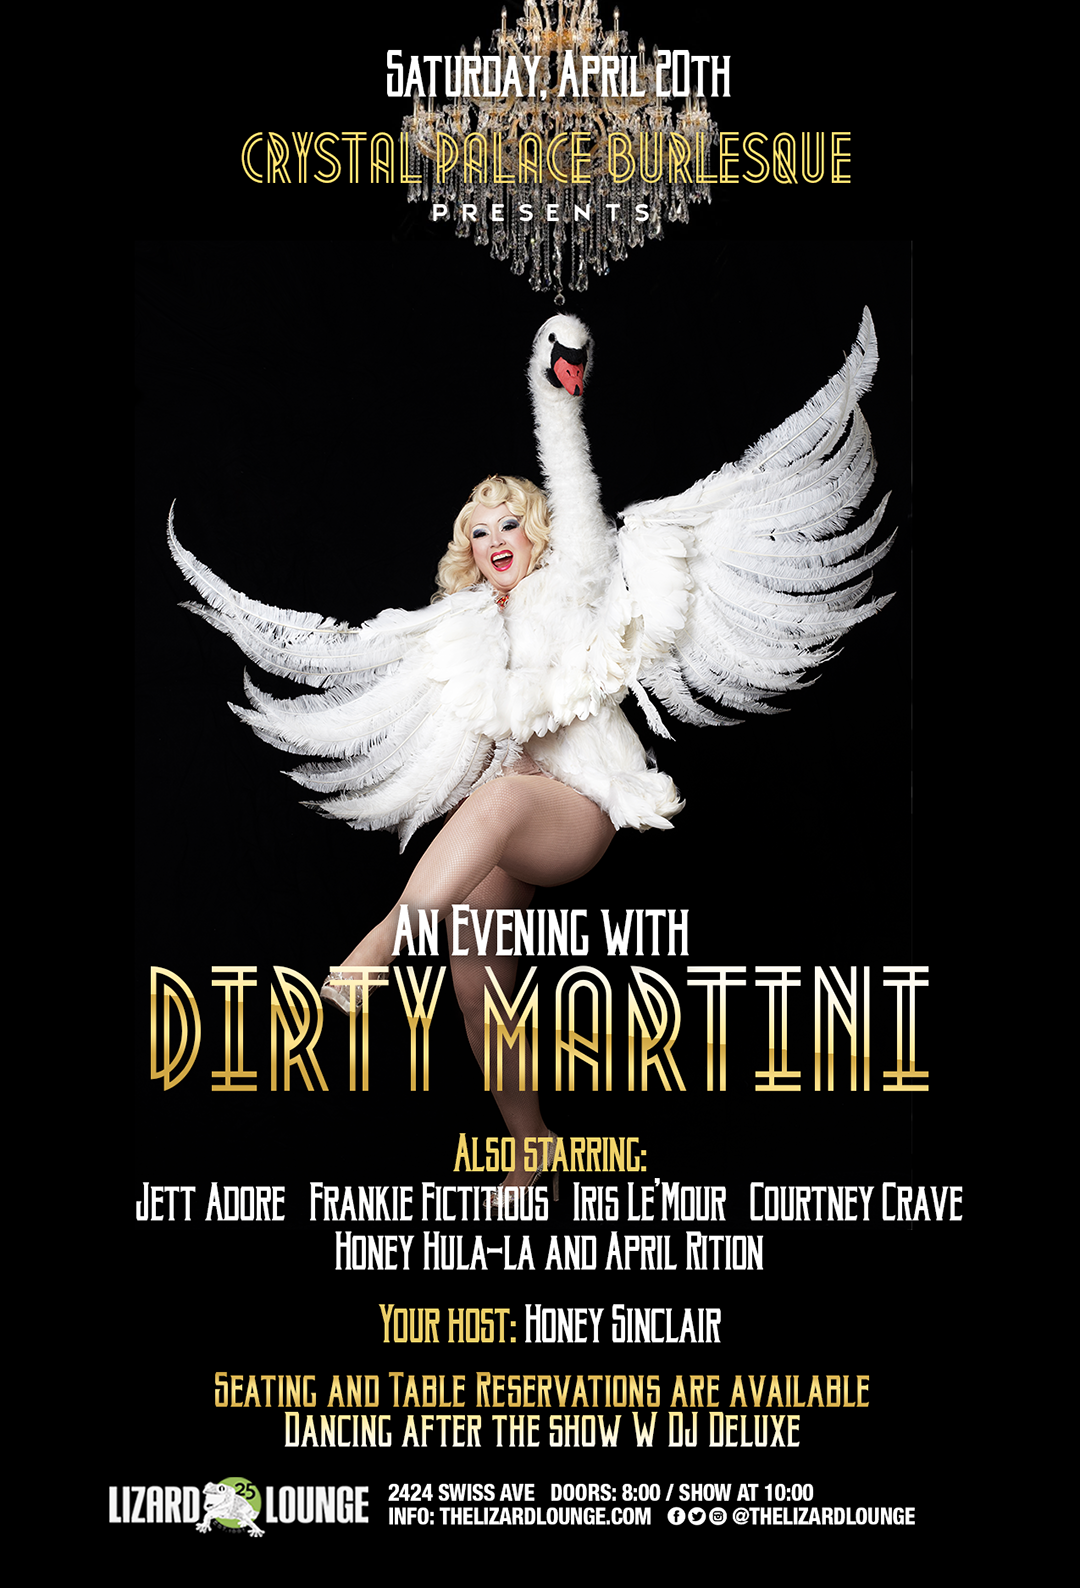 04.20.2019 - Crystal Palace Burlesque presents: An Evening with Dirty Martini